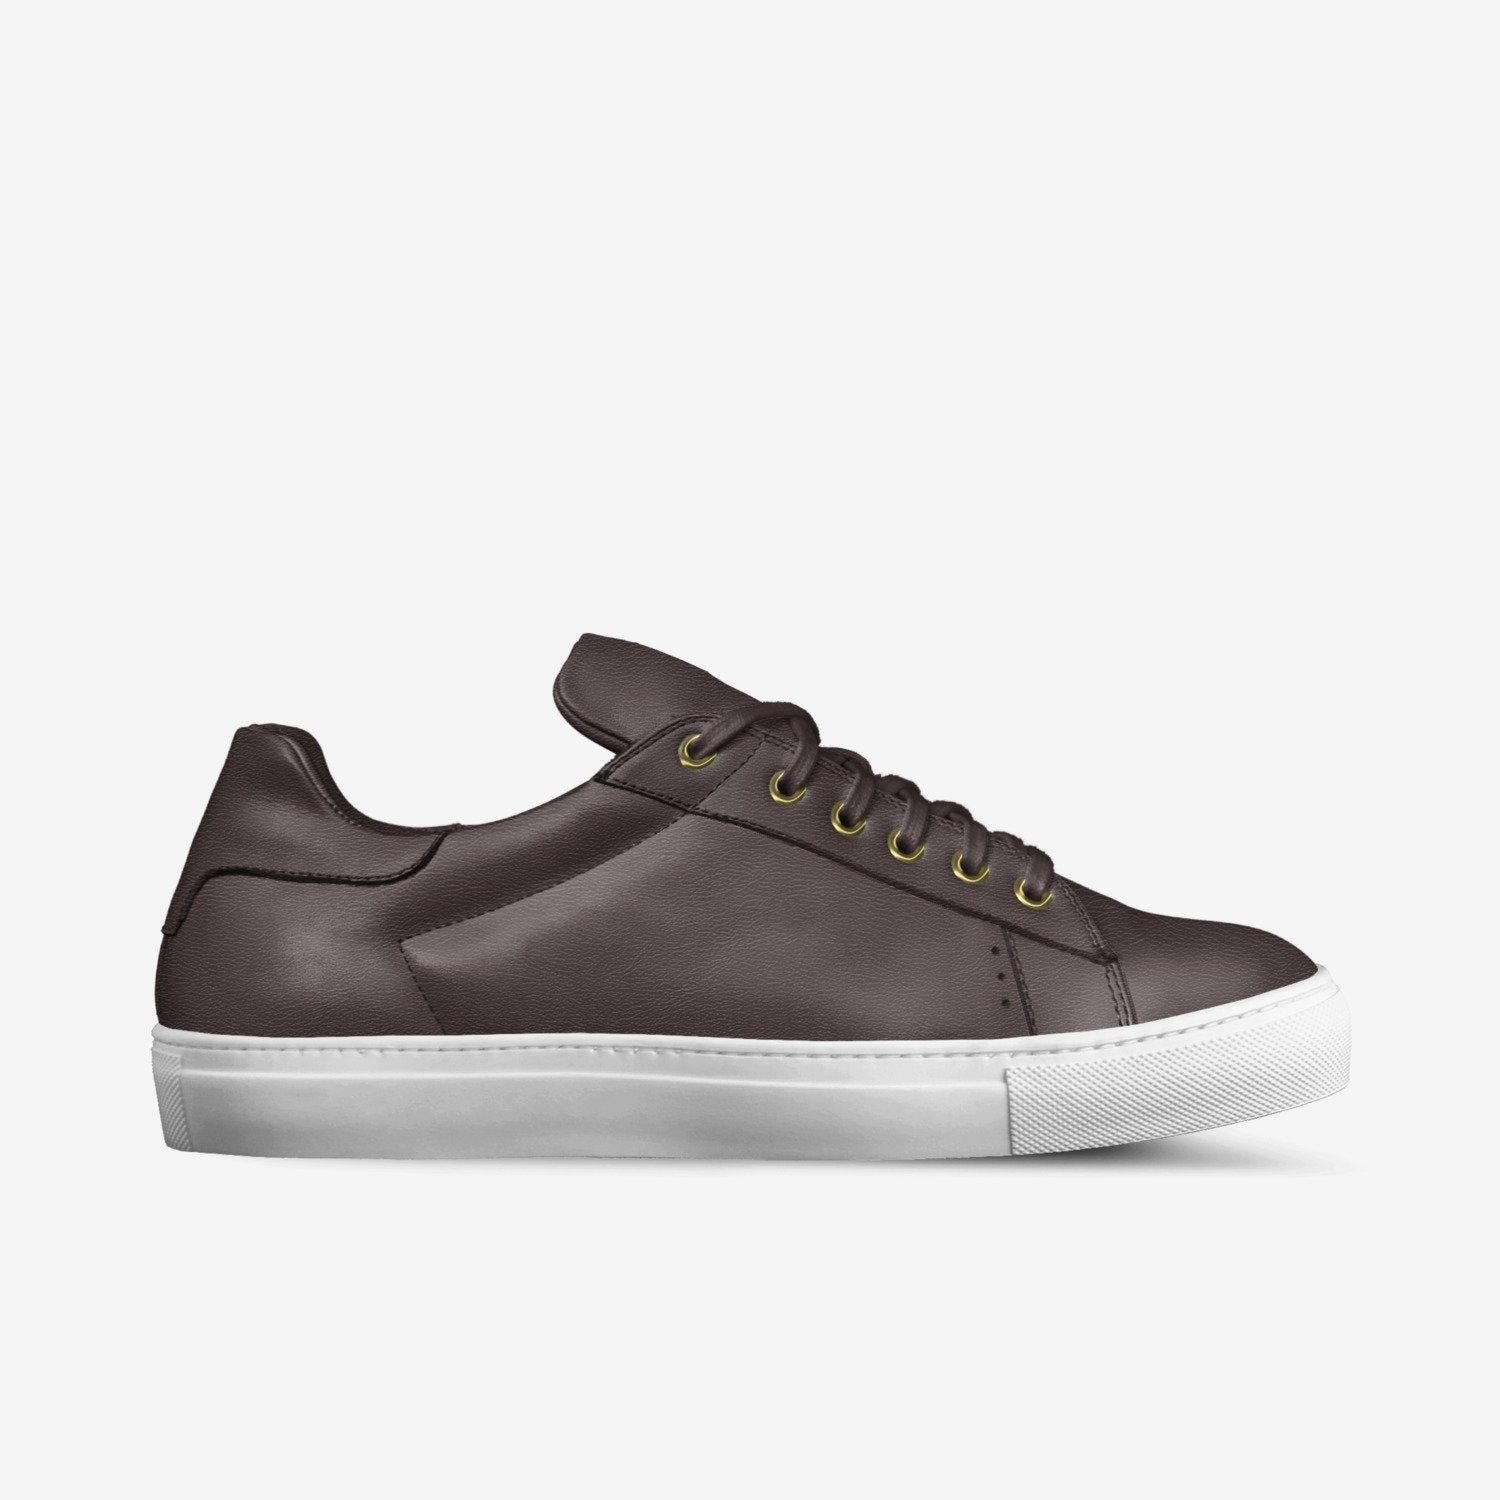 """LORENZO"" LEATHER SNEAKERS IN TOBACCO"